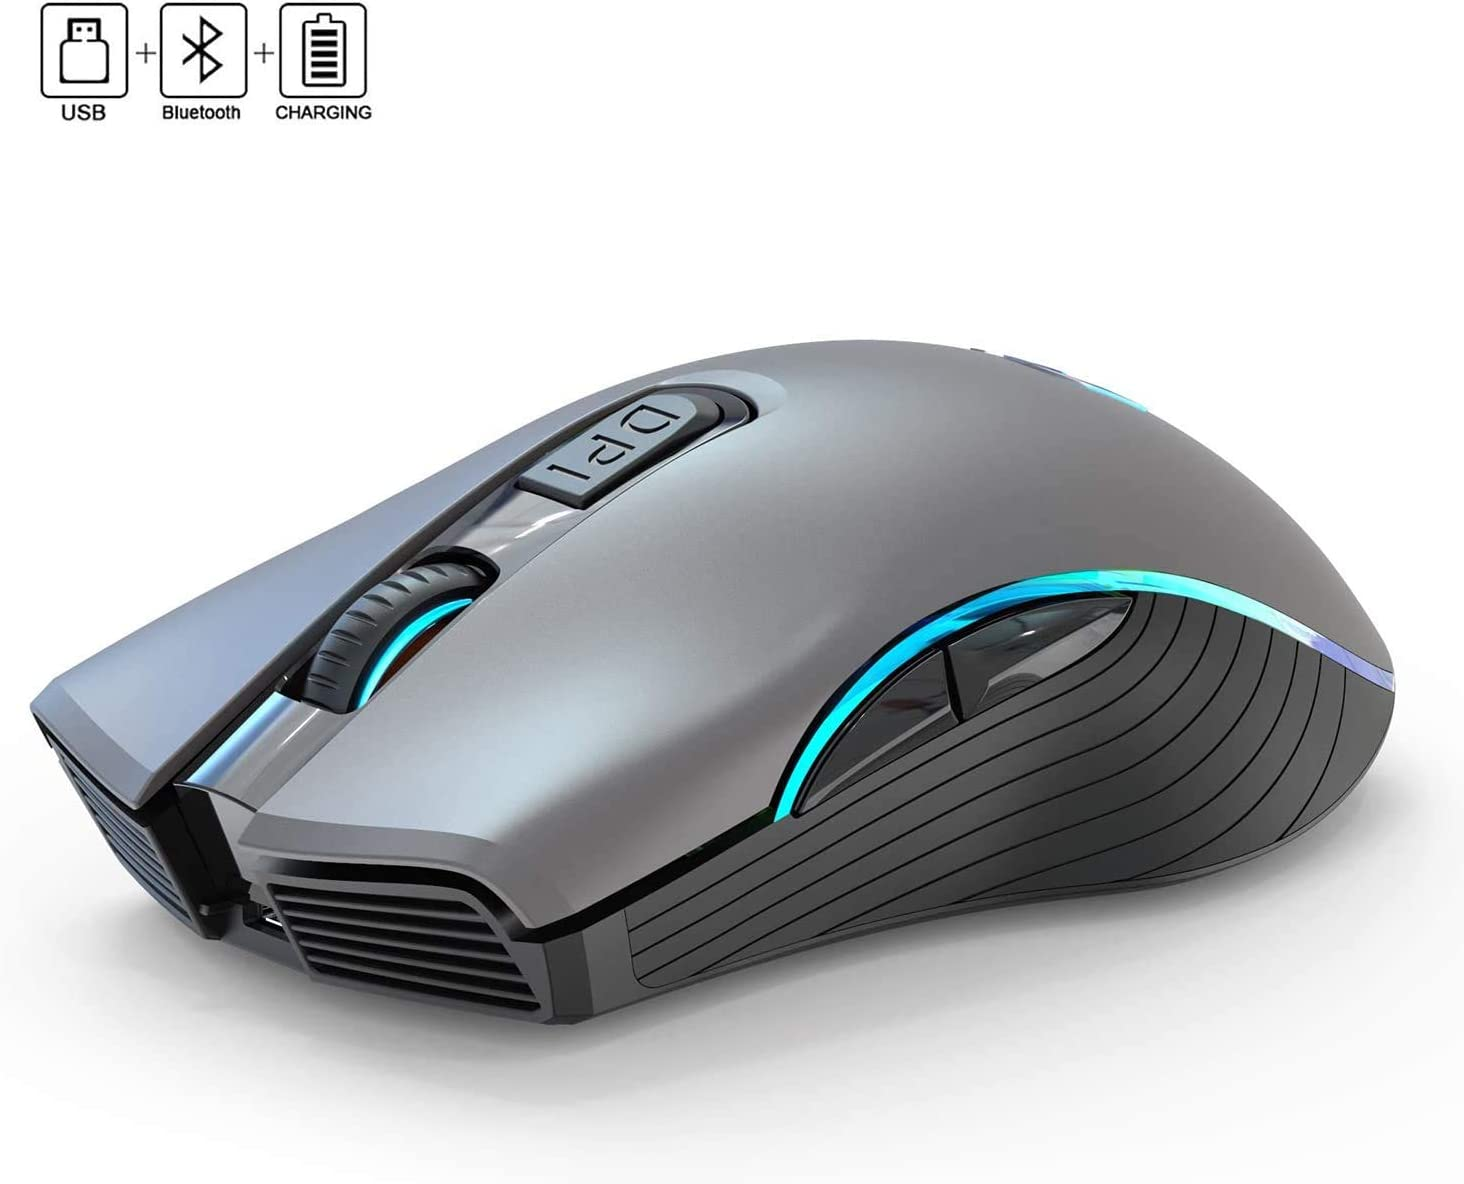 WFB Wireless Gaming Mouse Rechargeable Full Size Bluetooth Mice 2.4G with Nano USB Receiver,3 Adjustable DPI Levels,6 Buttons for Notebook,PC,Laptop,Computer,MacBook(Grey)